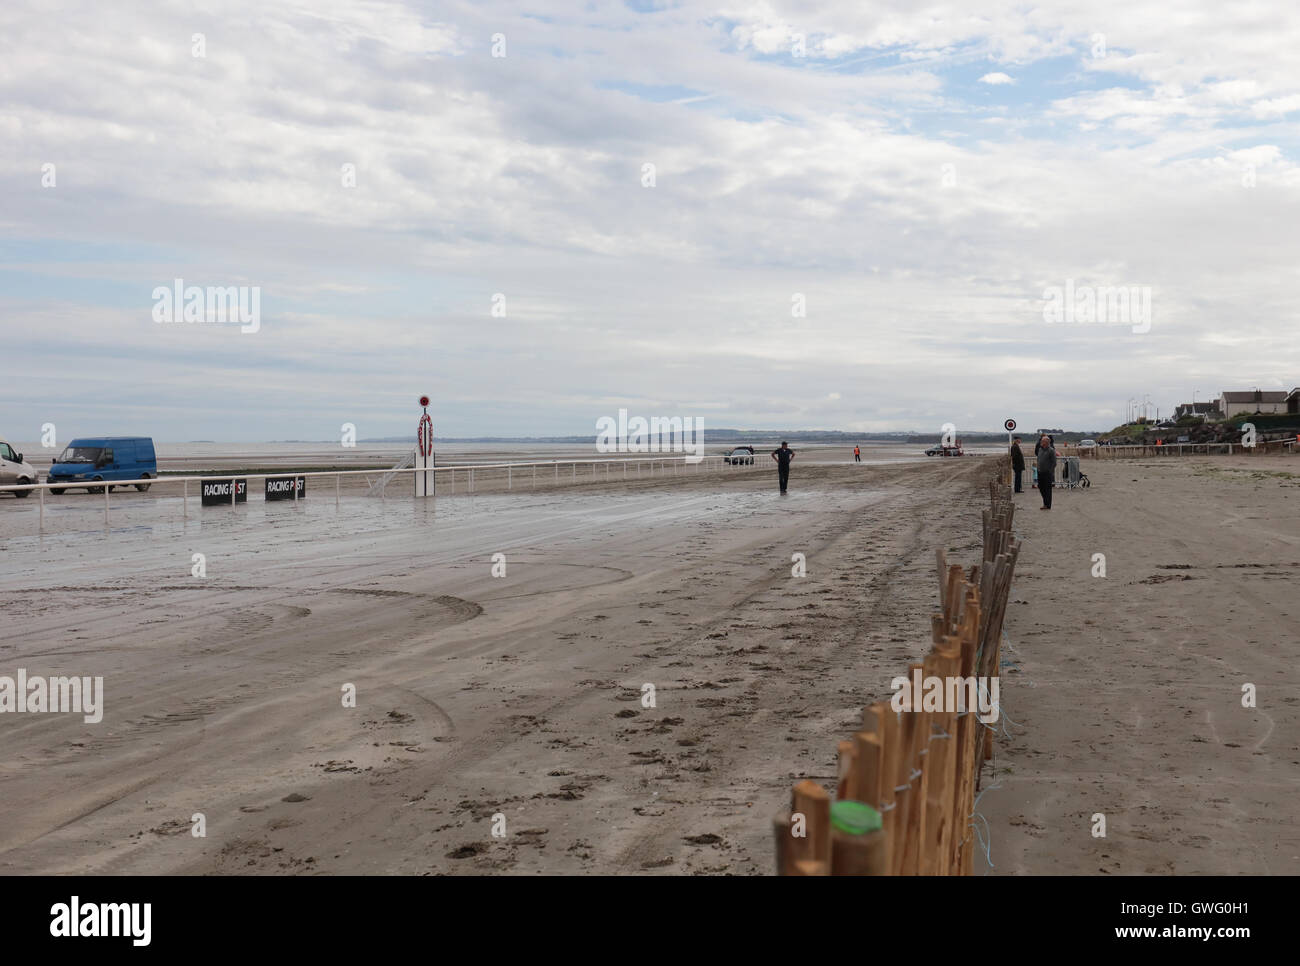 Current Local Time in Laytown, Ireland (Meath, Leinster): Date